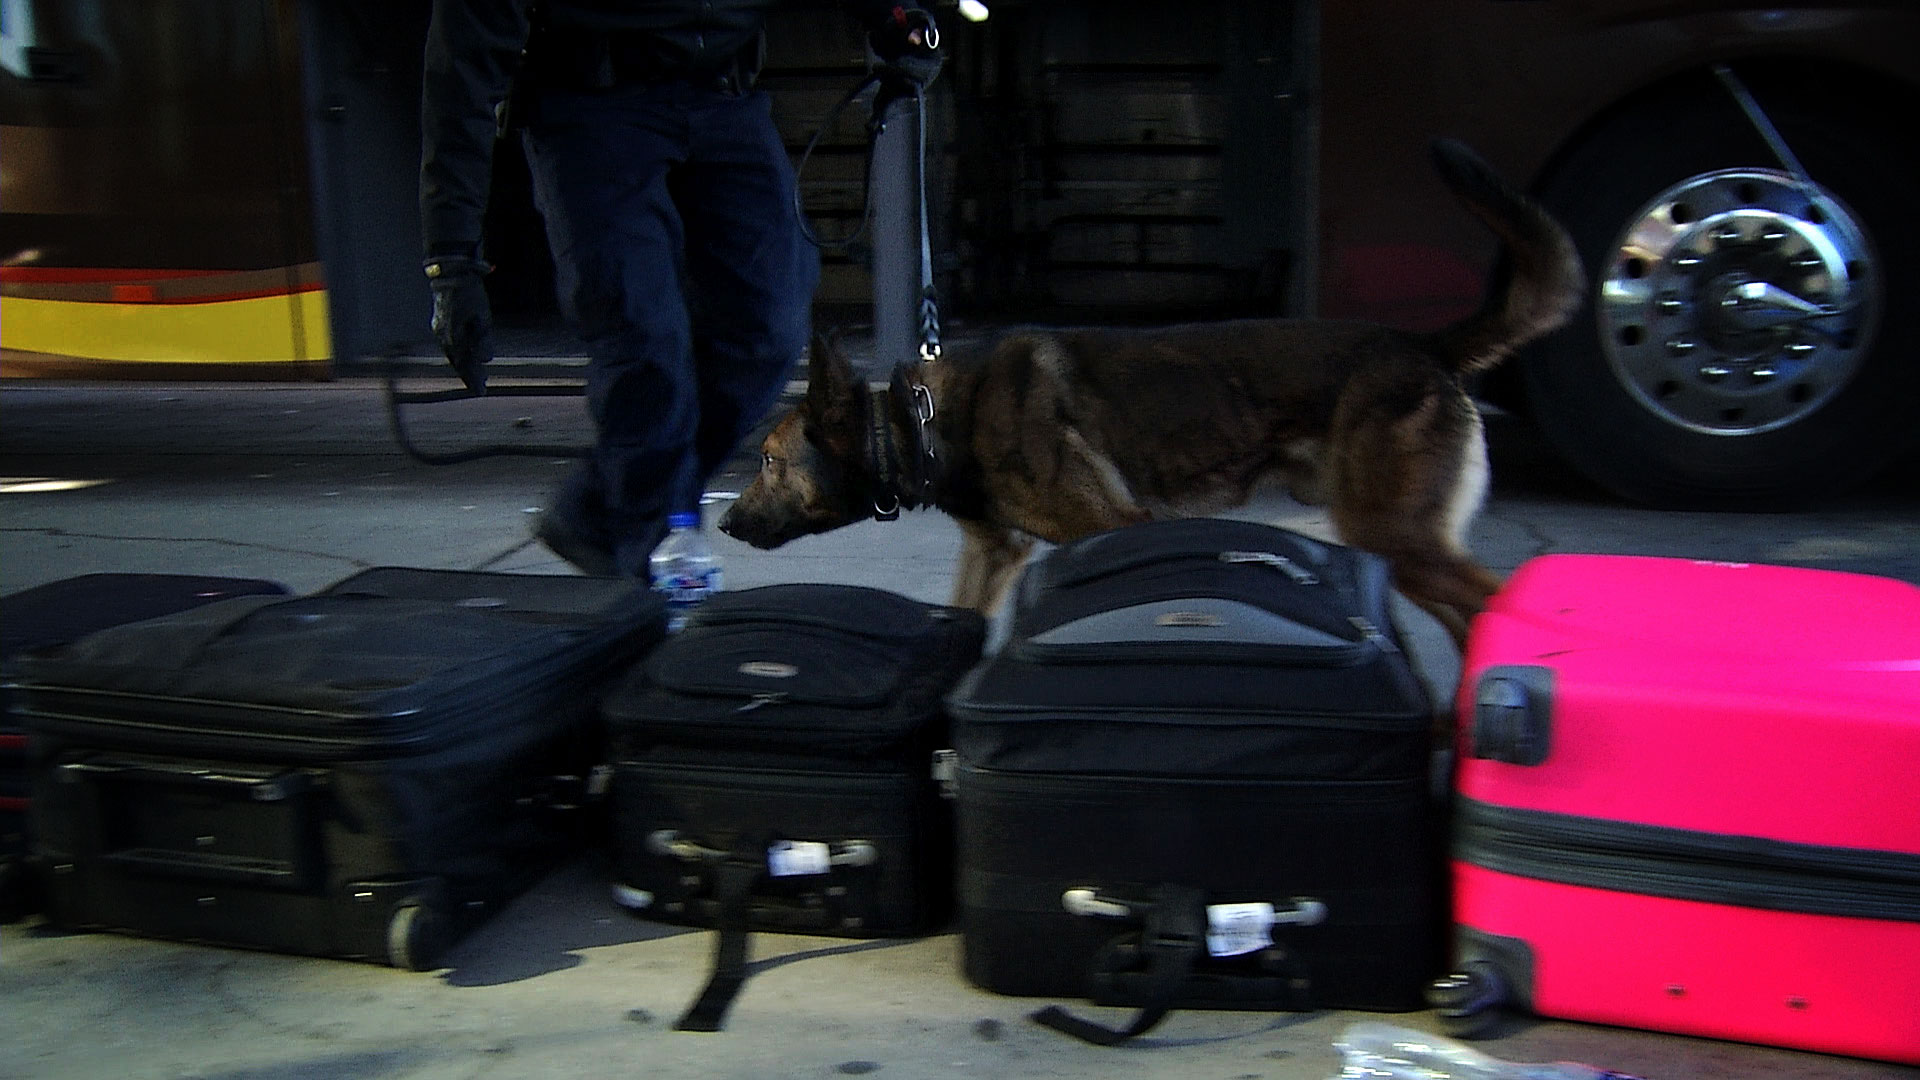 A Customs and Border Protection drug detection K-9 sniffs luggage at the Mariposa Port of Entry in Nogales.